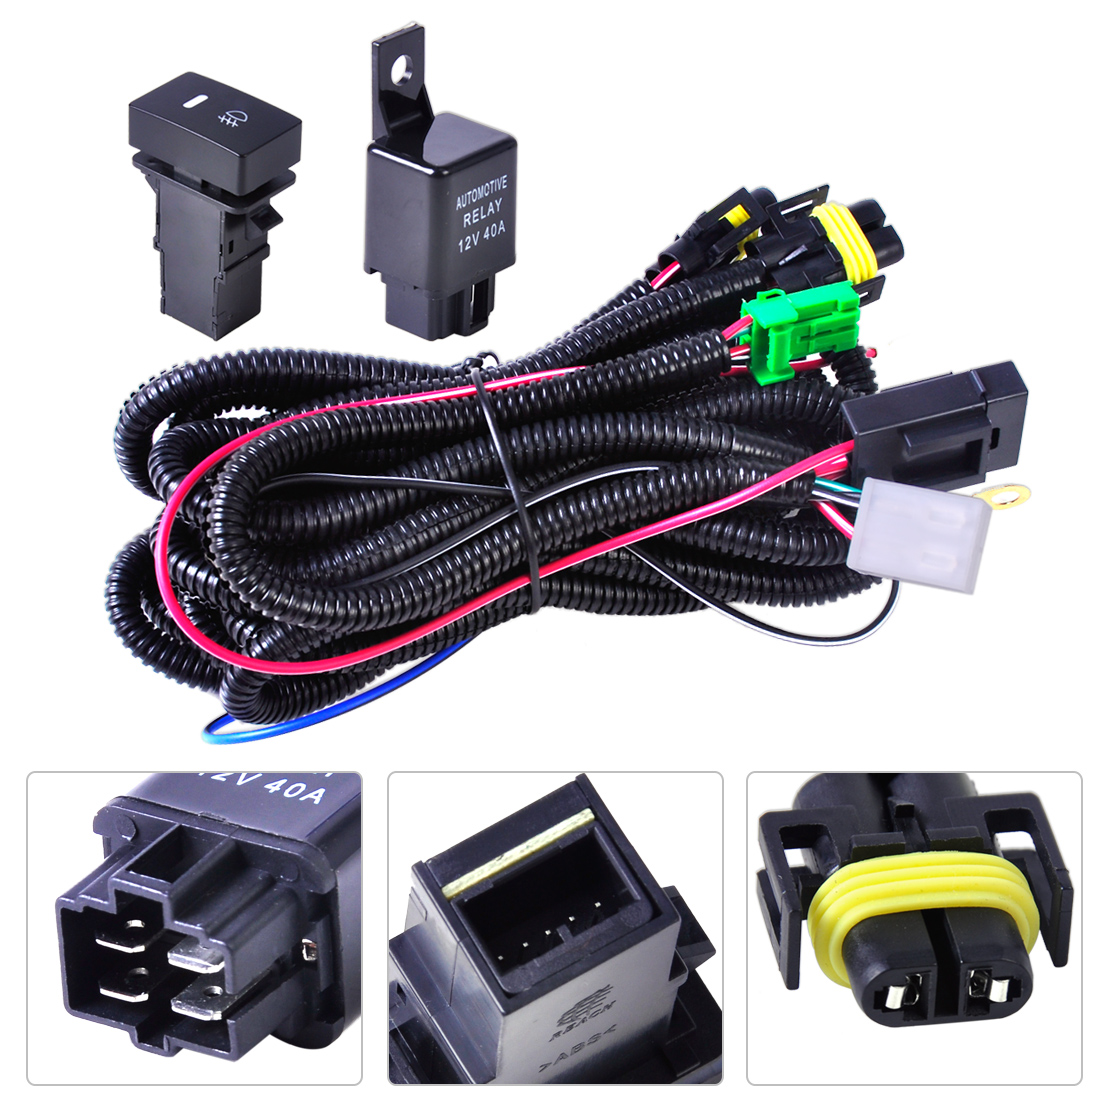 2008 Ford Ranger Fog Light Wiring Harness Diagram Will Be A 05f 250 Sockets Switch For H11 Lamp Focus Rh Ebay Com 1999 Explorer Pigtail